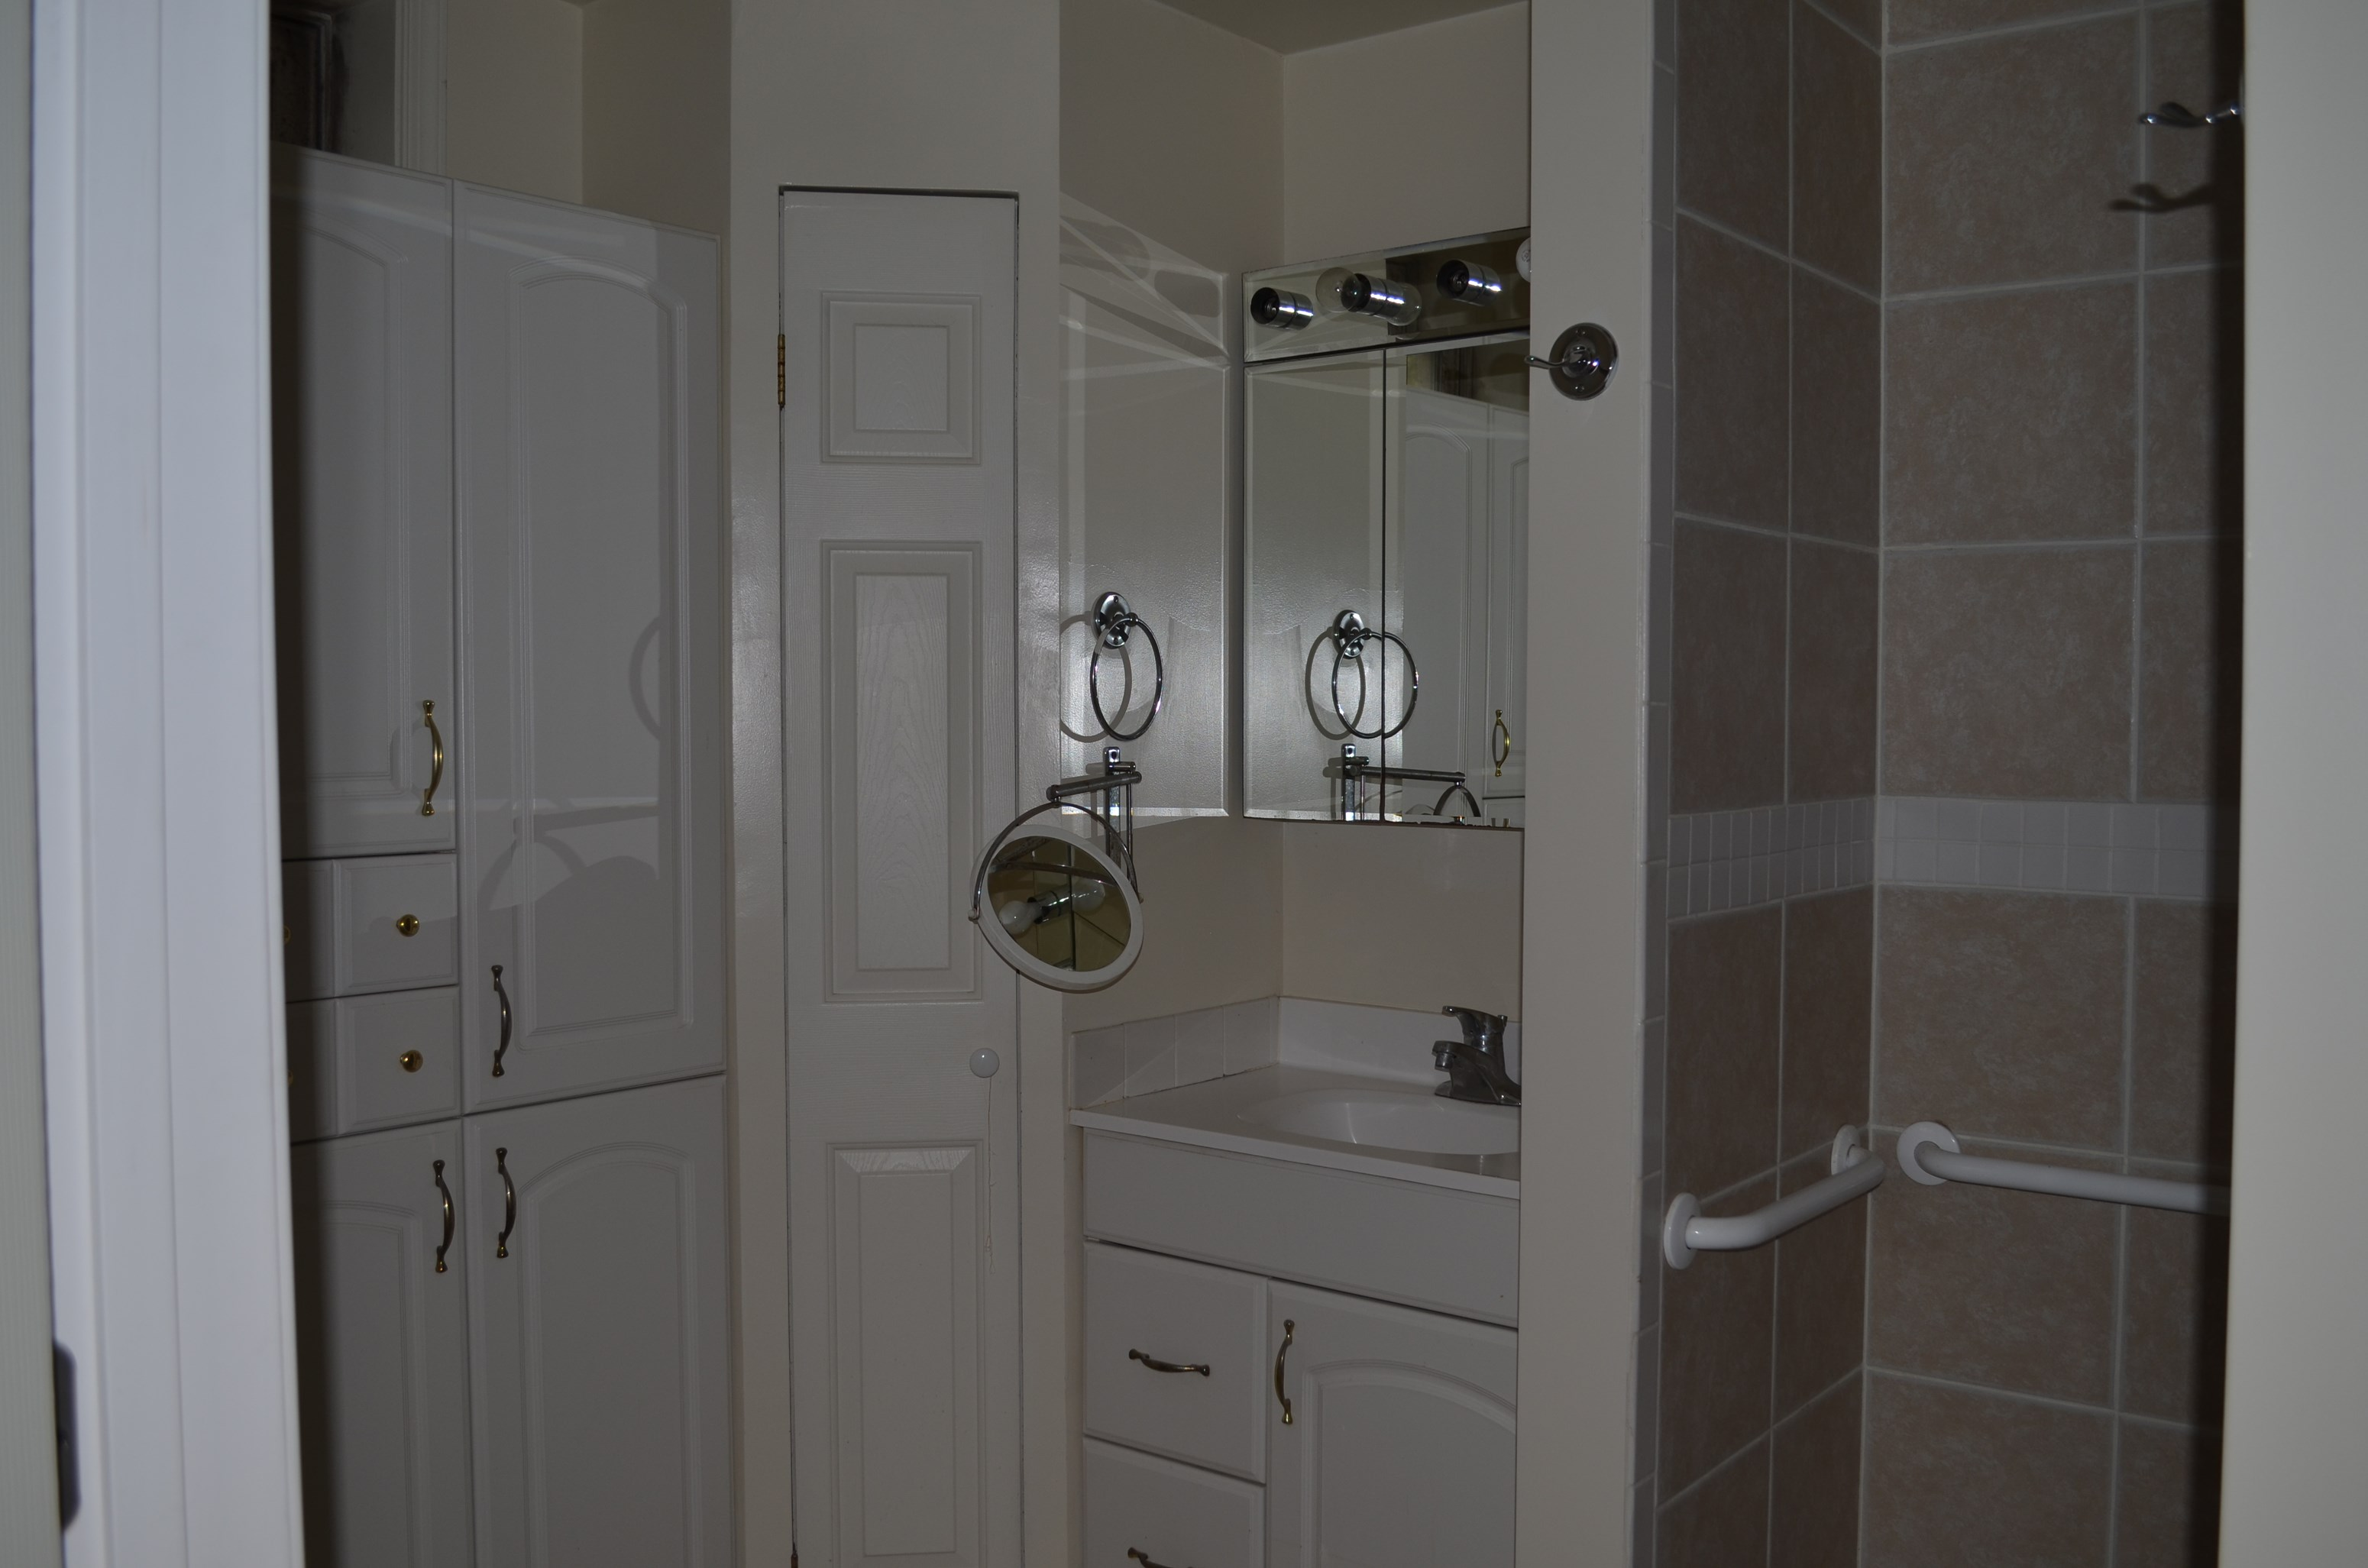 ... 1BR, 1BATH, FULL KITCHEN BASEMENT APARTMENT WITH PRIVATE DRIVEWAY IN  ELKRIDGE, ...